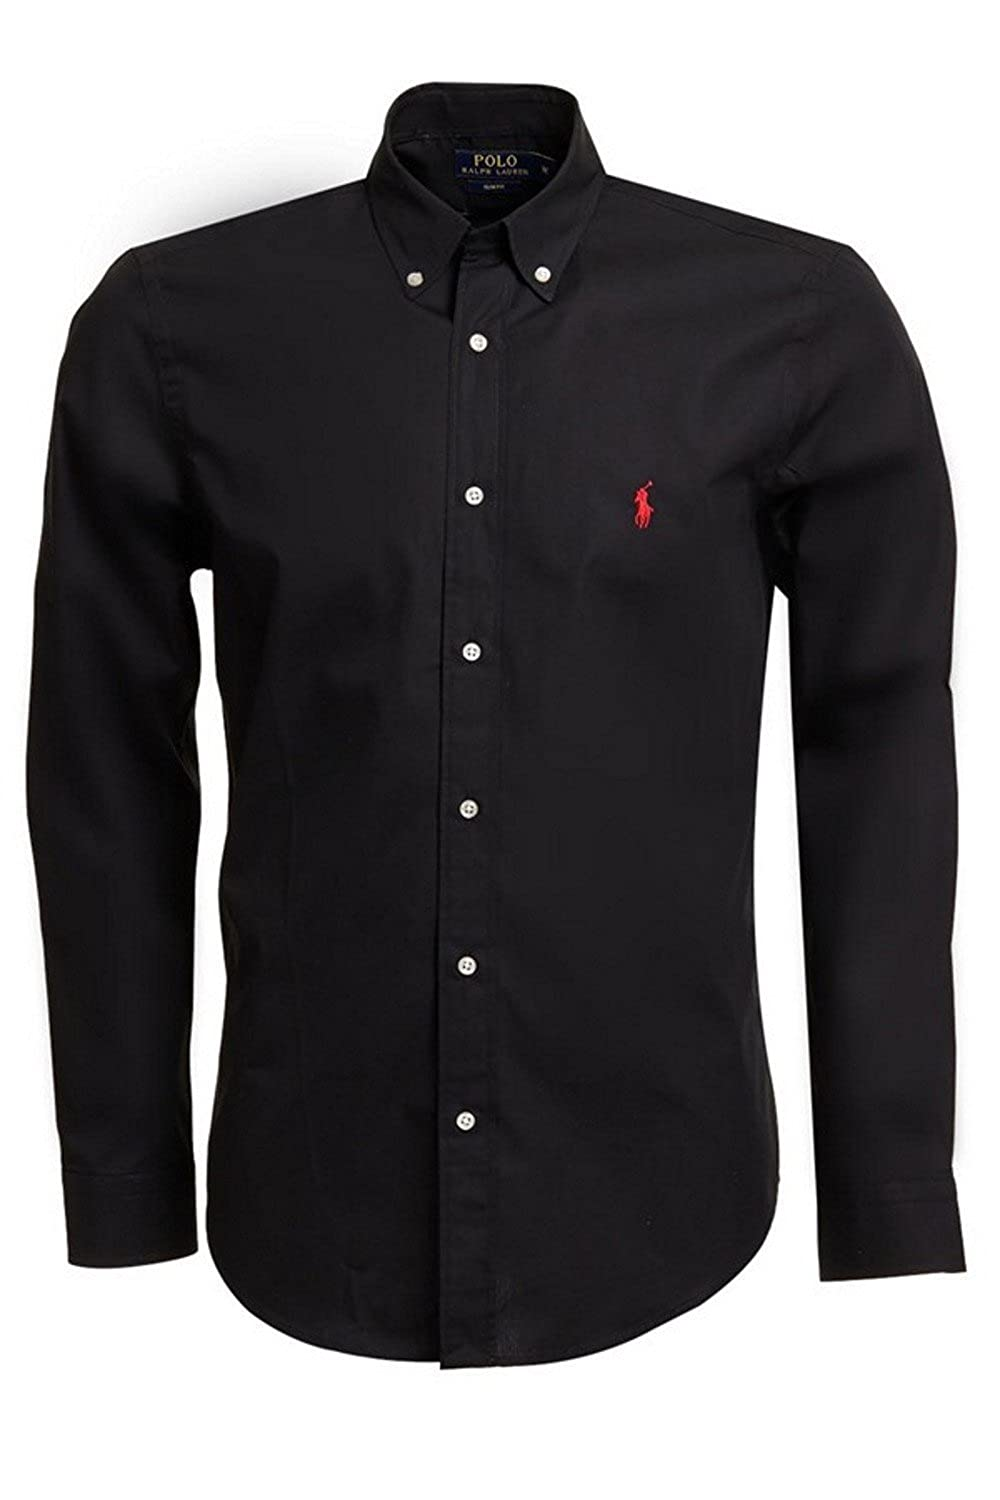 ralph lauren hemd wei? slim fit